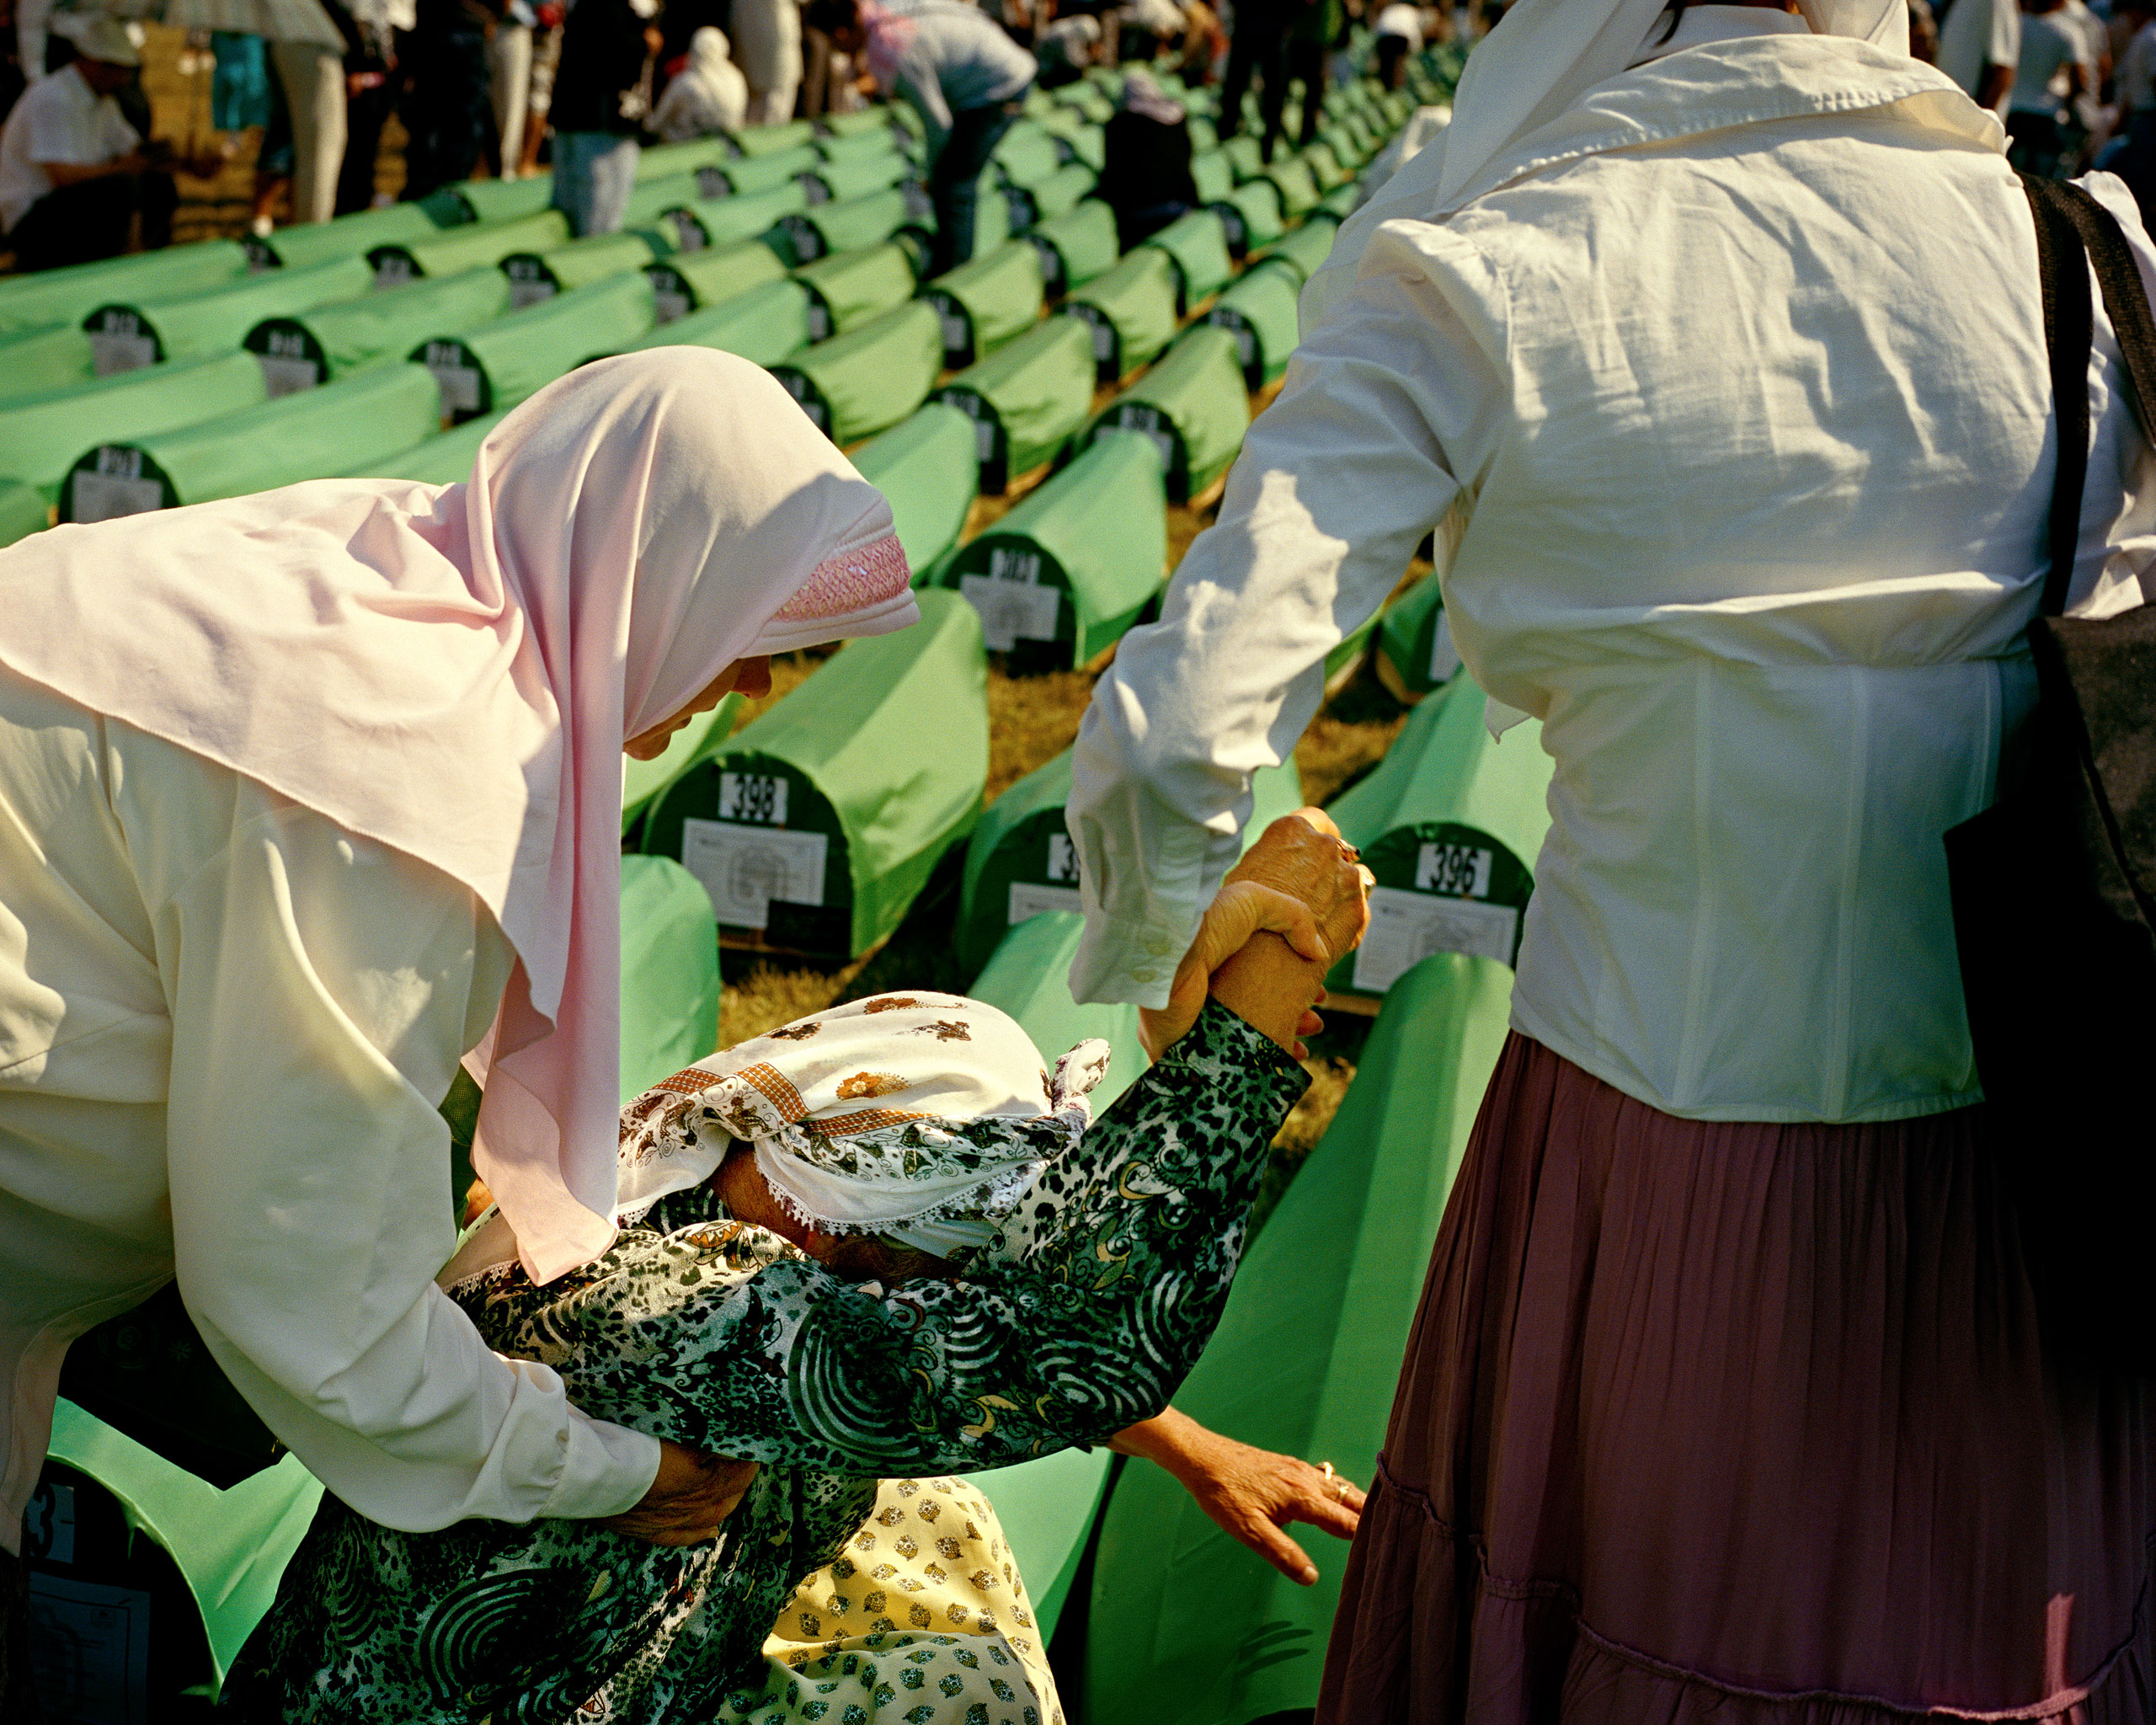 Cemetery in Potocari, Bosnia and Herzegovina                               , 16th anniversary of the Srebrenica Massacre, 2011                               Women grieve the remains of their relatives killed by Serbian military units  during the Bosnian War. Identified human remains from the mass graves are buried every year on the anniversary of the massacre.